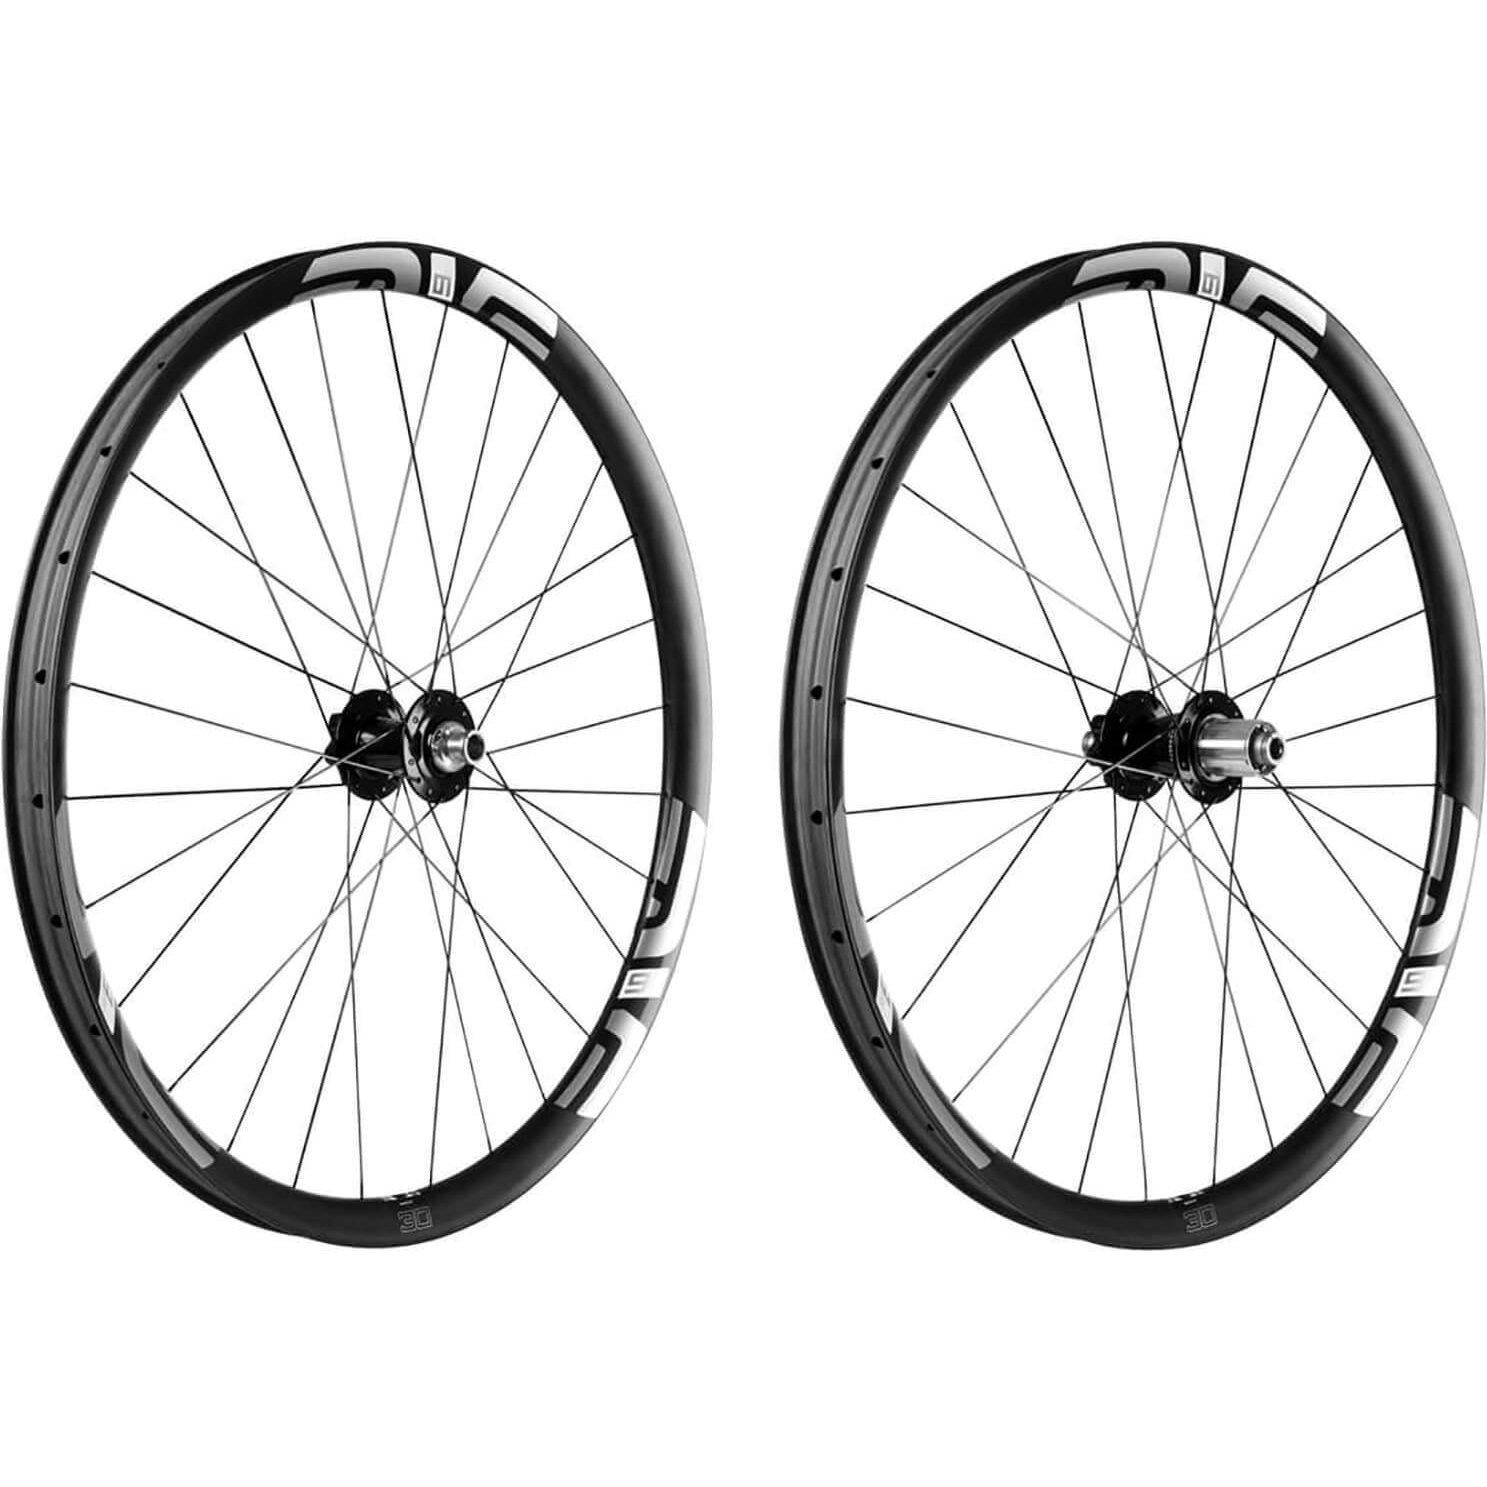 ENVE-ENVE M630 MTB Wheelset – Chris King Hubs-Black – SRAM XD-29-EN1327CK1002113010-saddleback-elite-performance-cycling